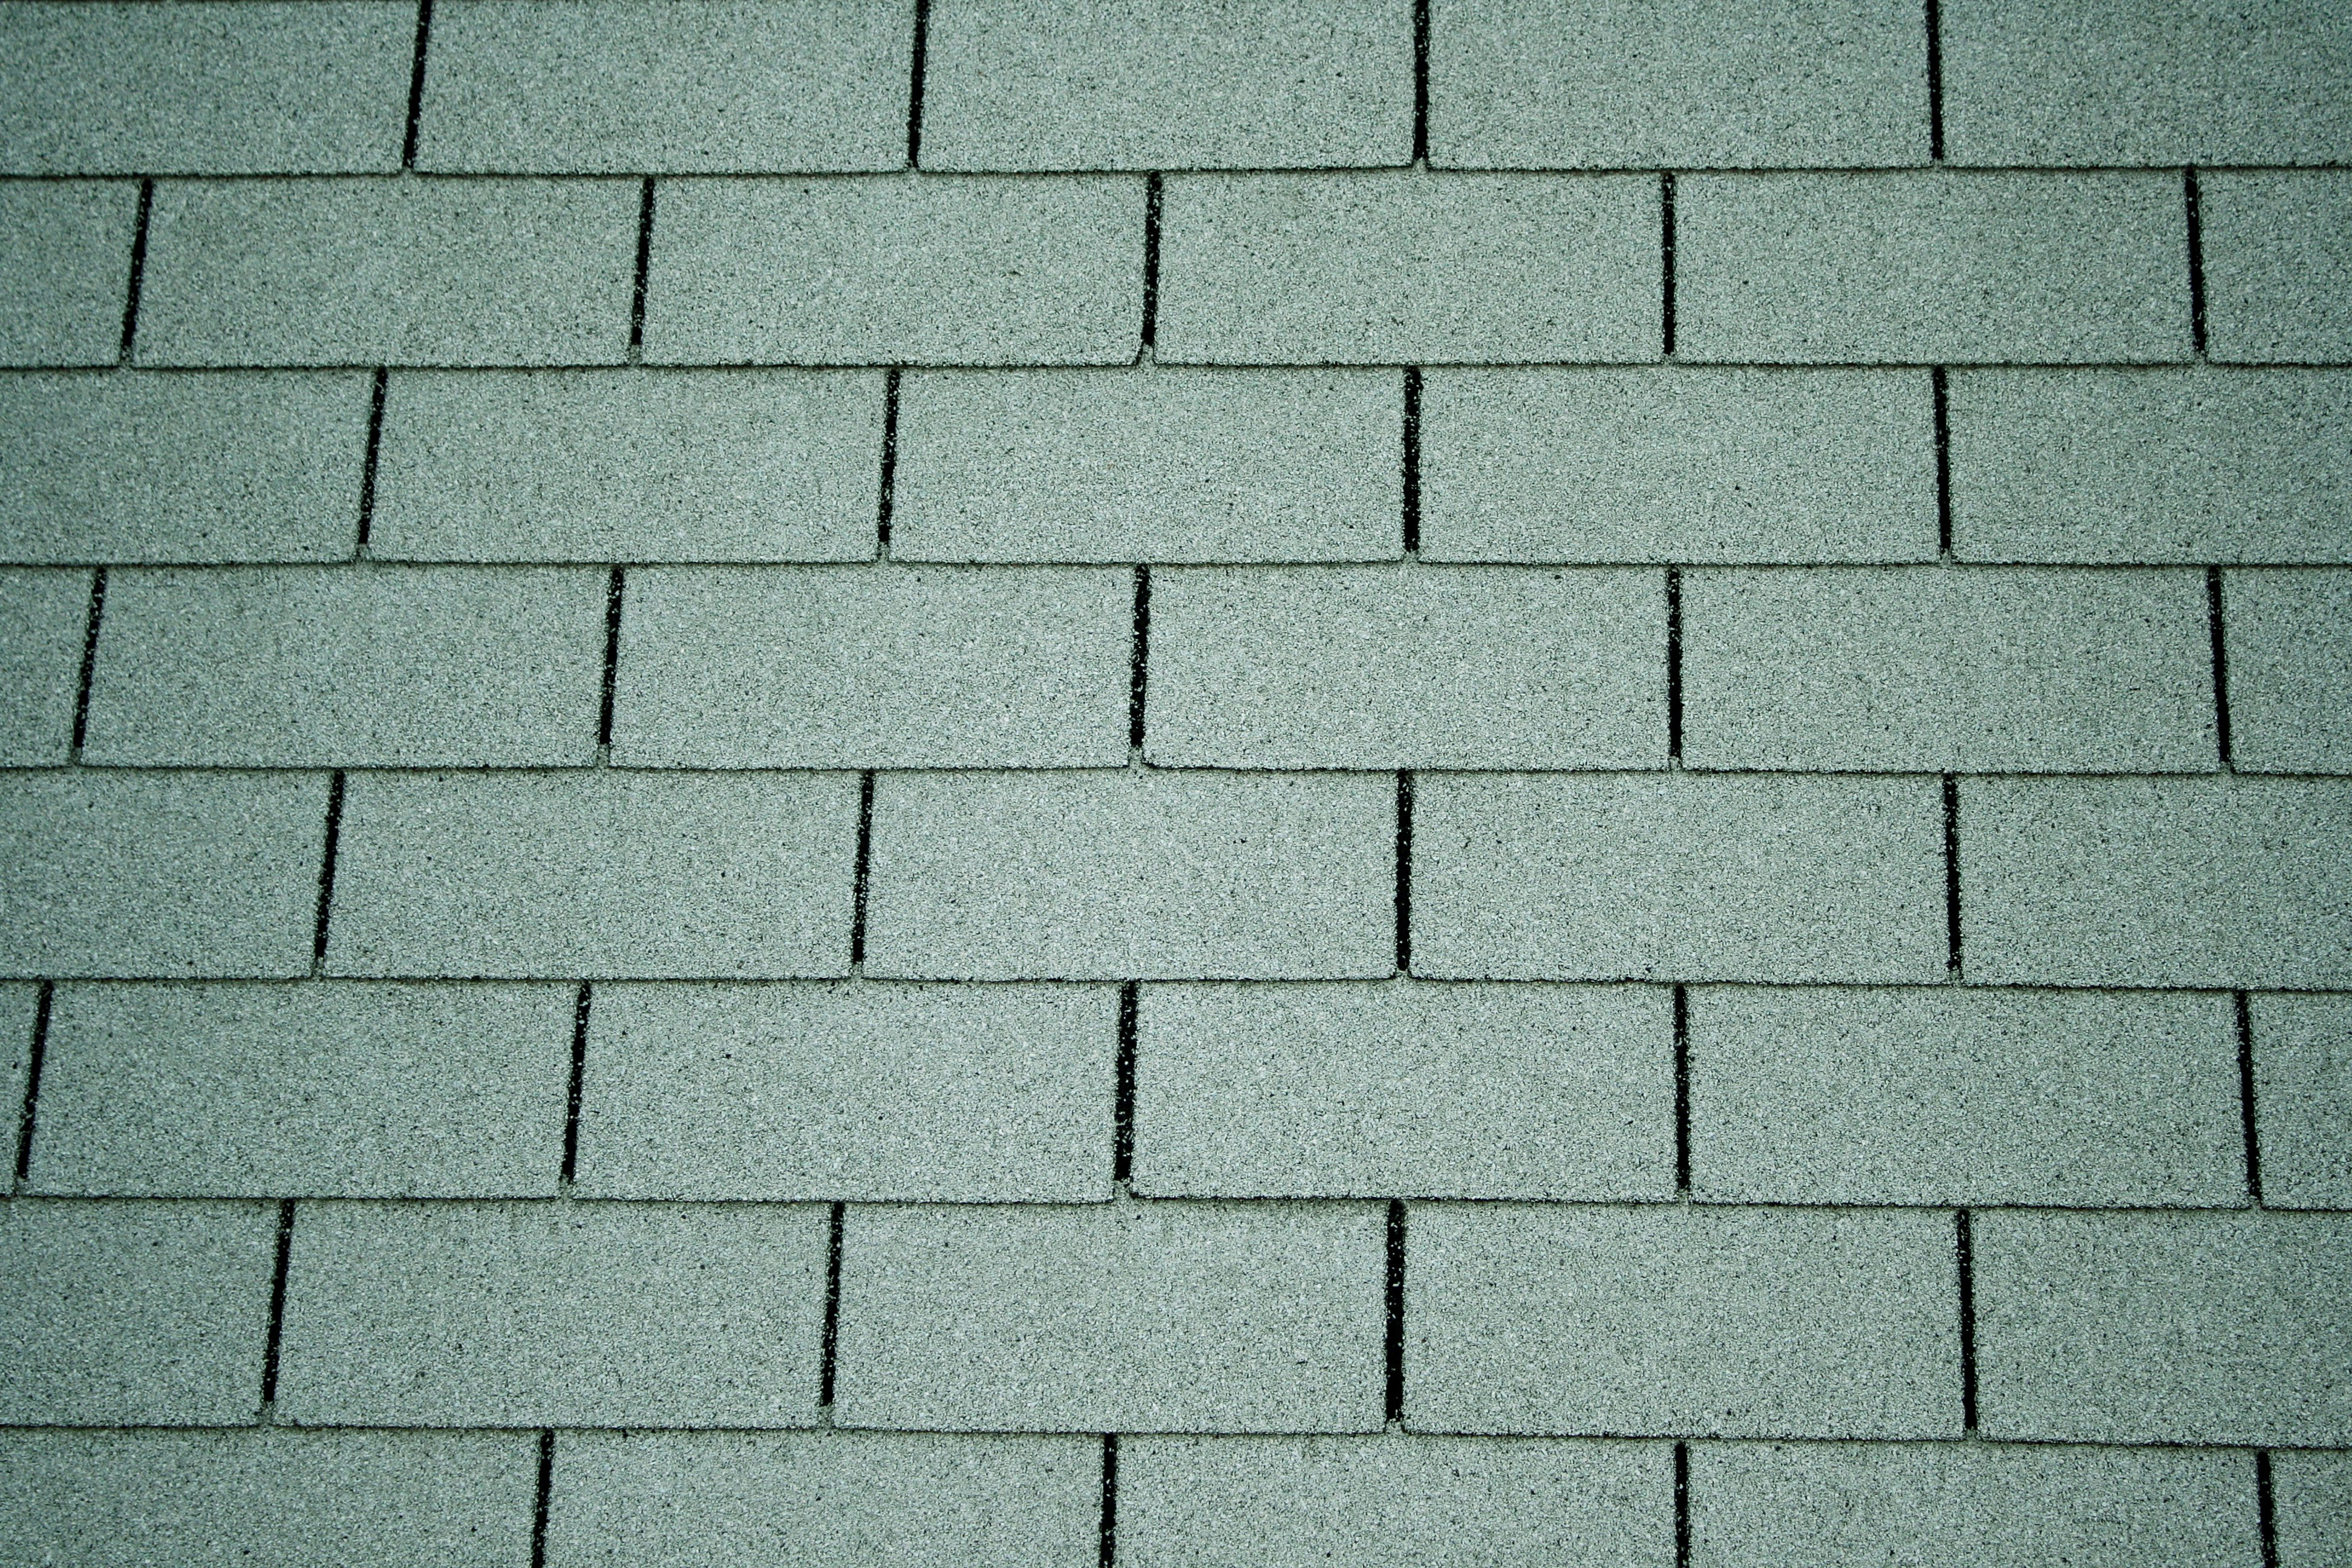 Dark blue wallpaper asphalt roof shingles texture dark blue wallpaper - Light Green Asphalt Roof Shingles Texture